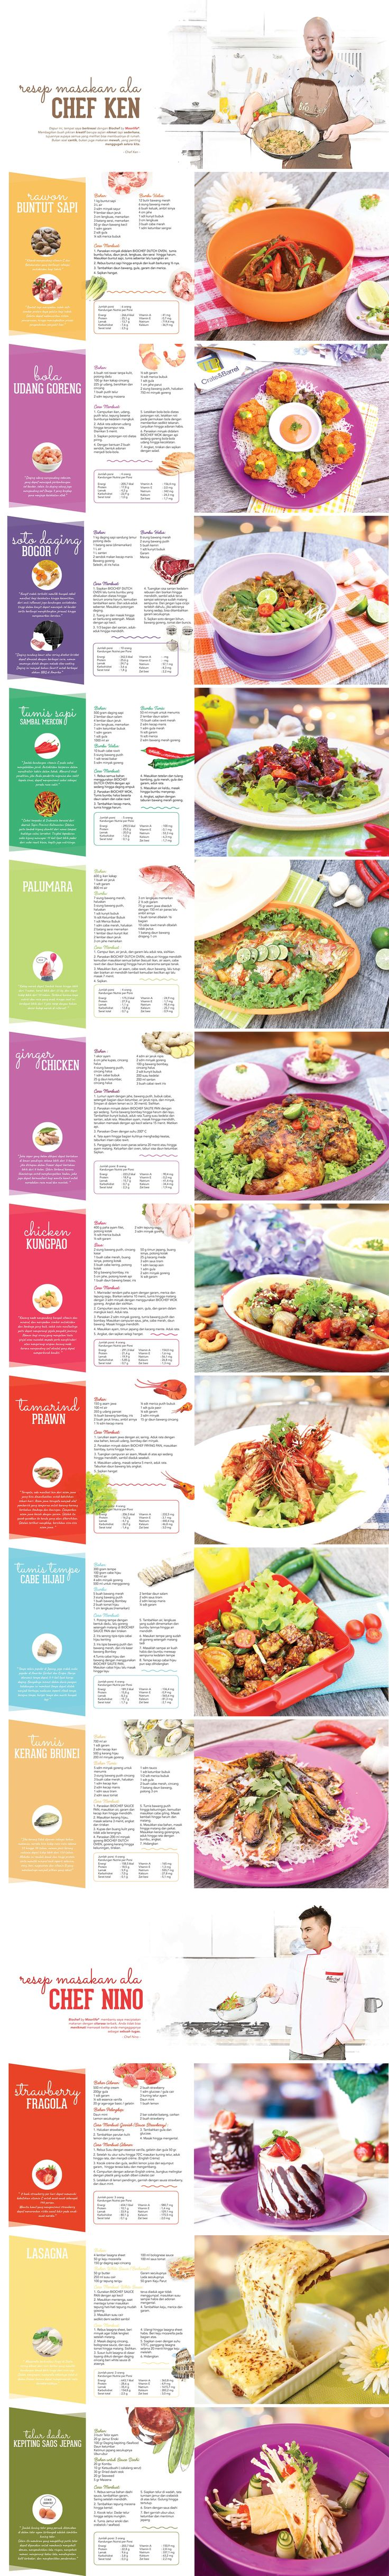 part of CMN recipe book pages layout design